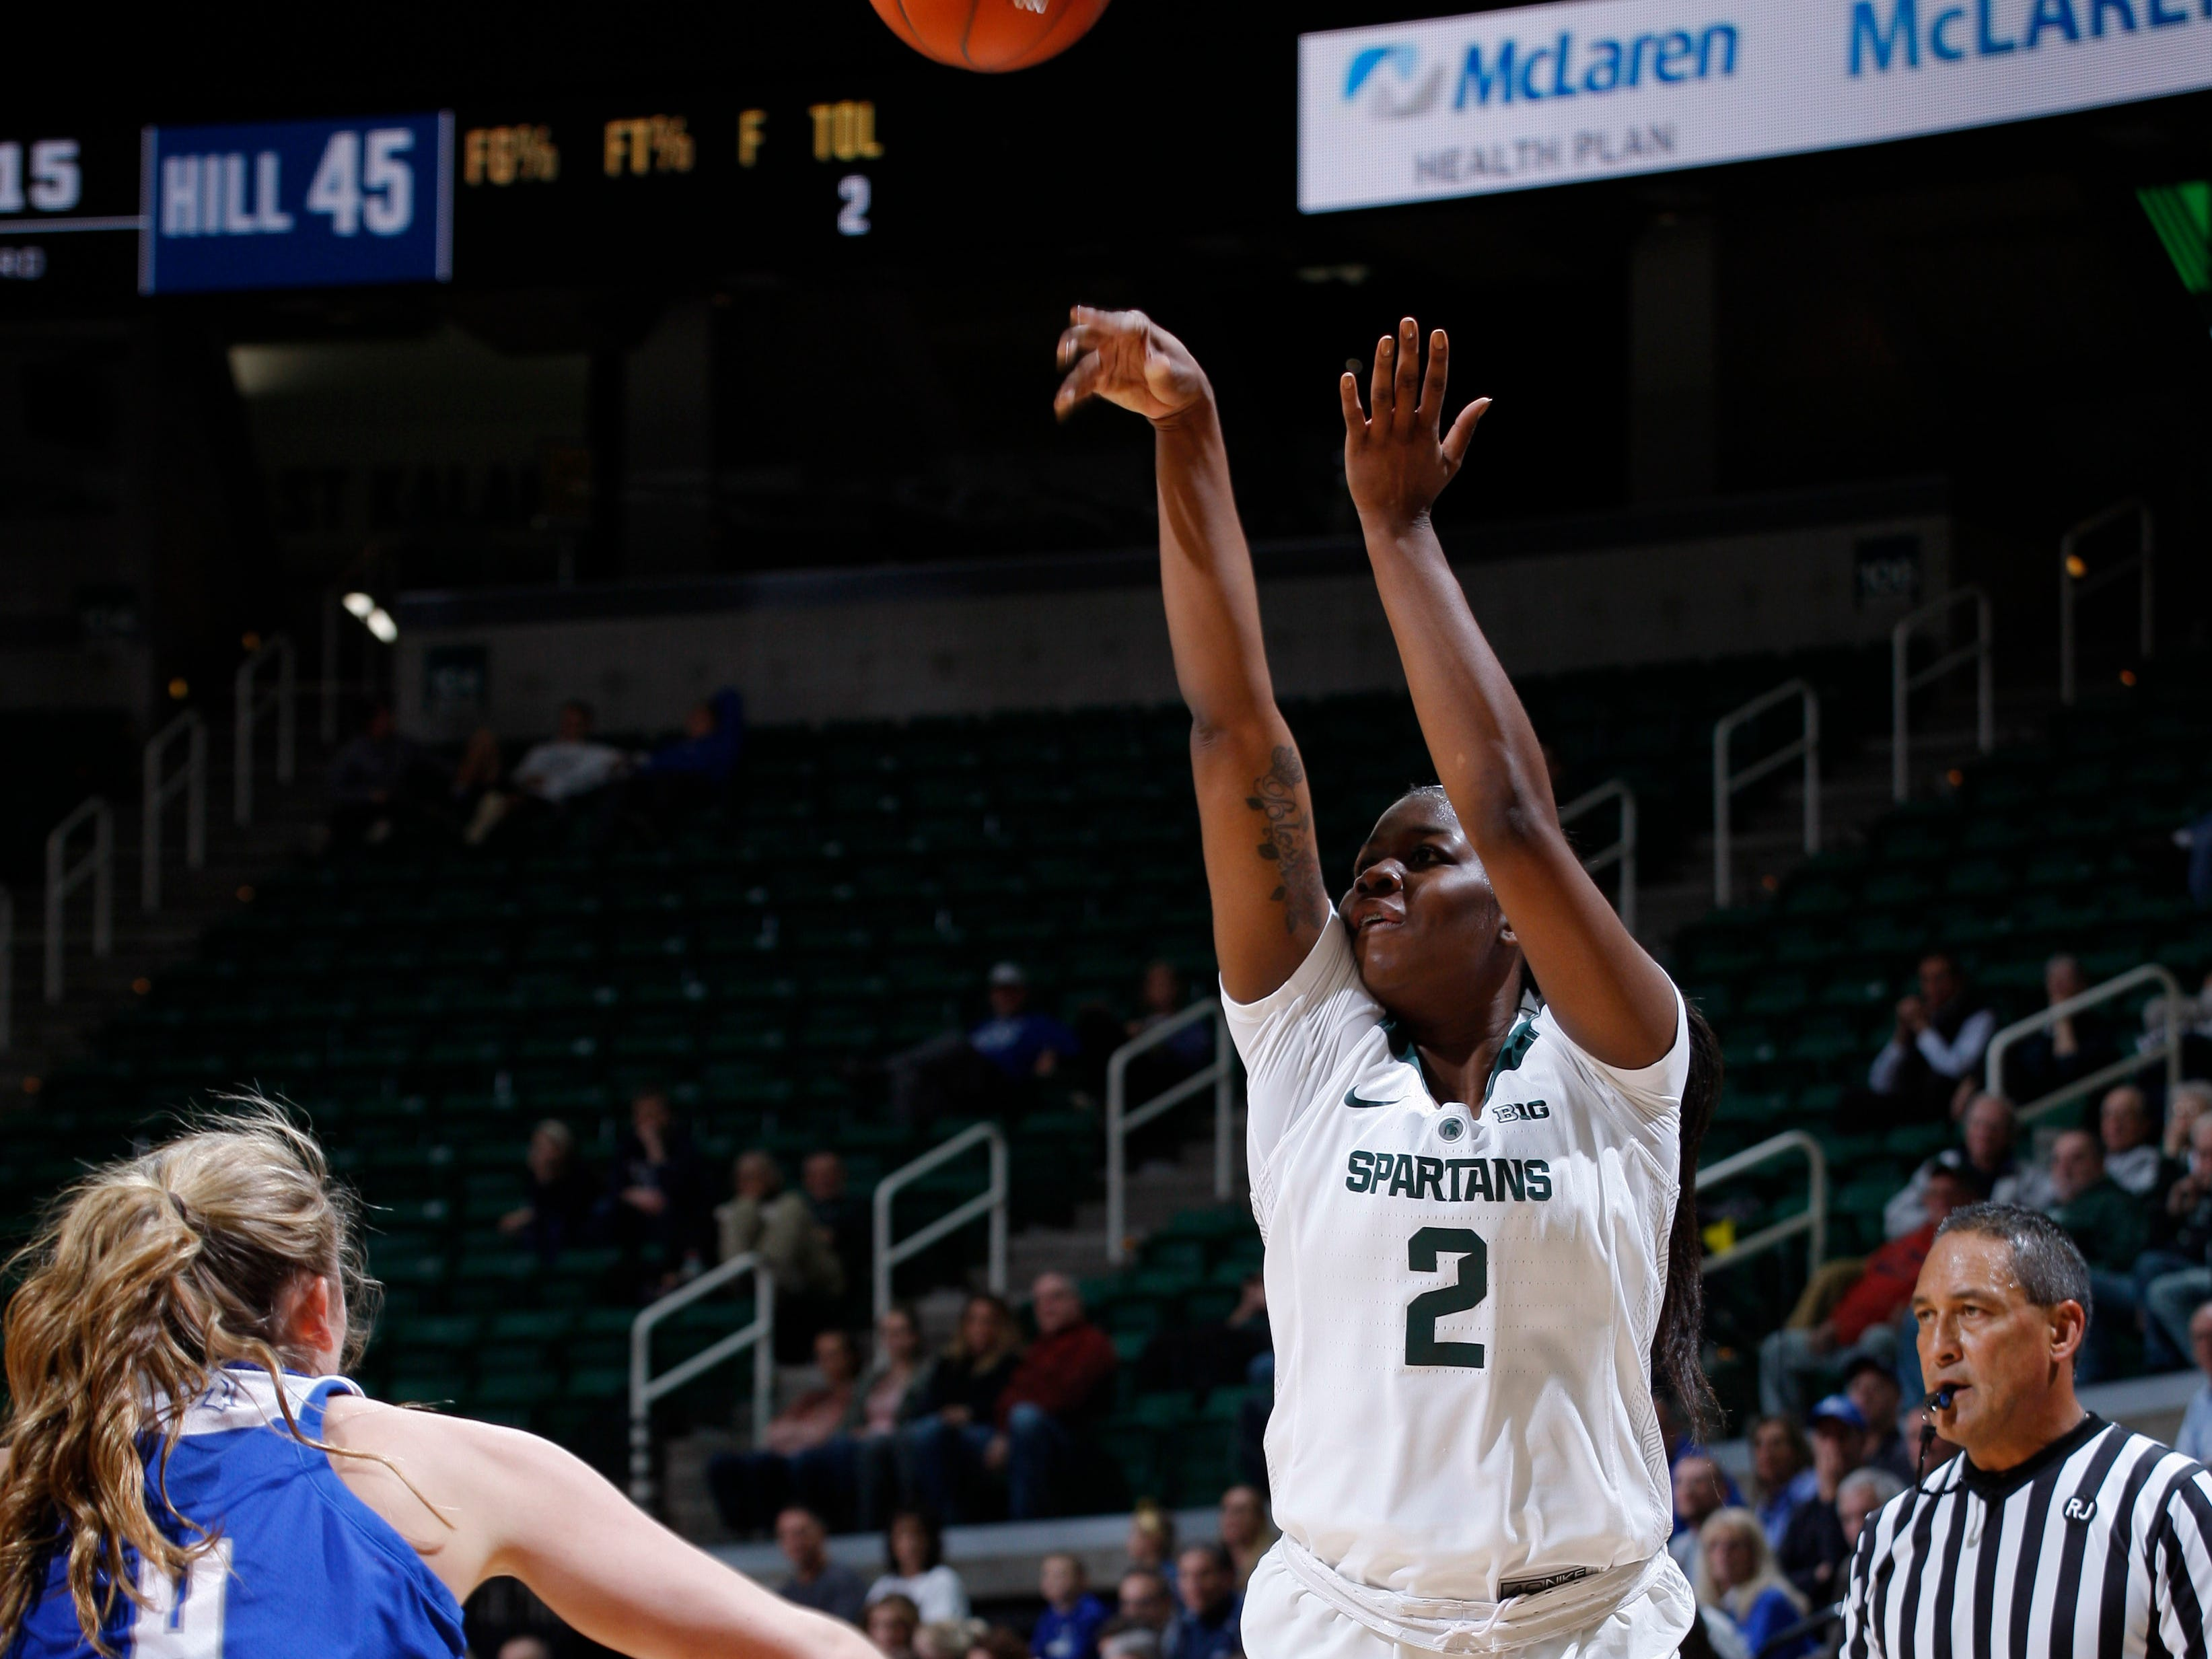 Michigan State's Madrekia Cook (2) shoots against Hillsdale's Hunter Stevens, Thursday, Nov. 1, 2018, in East Lansing, Mich.